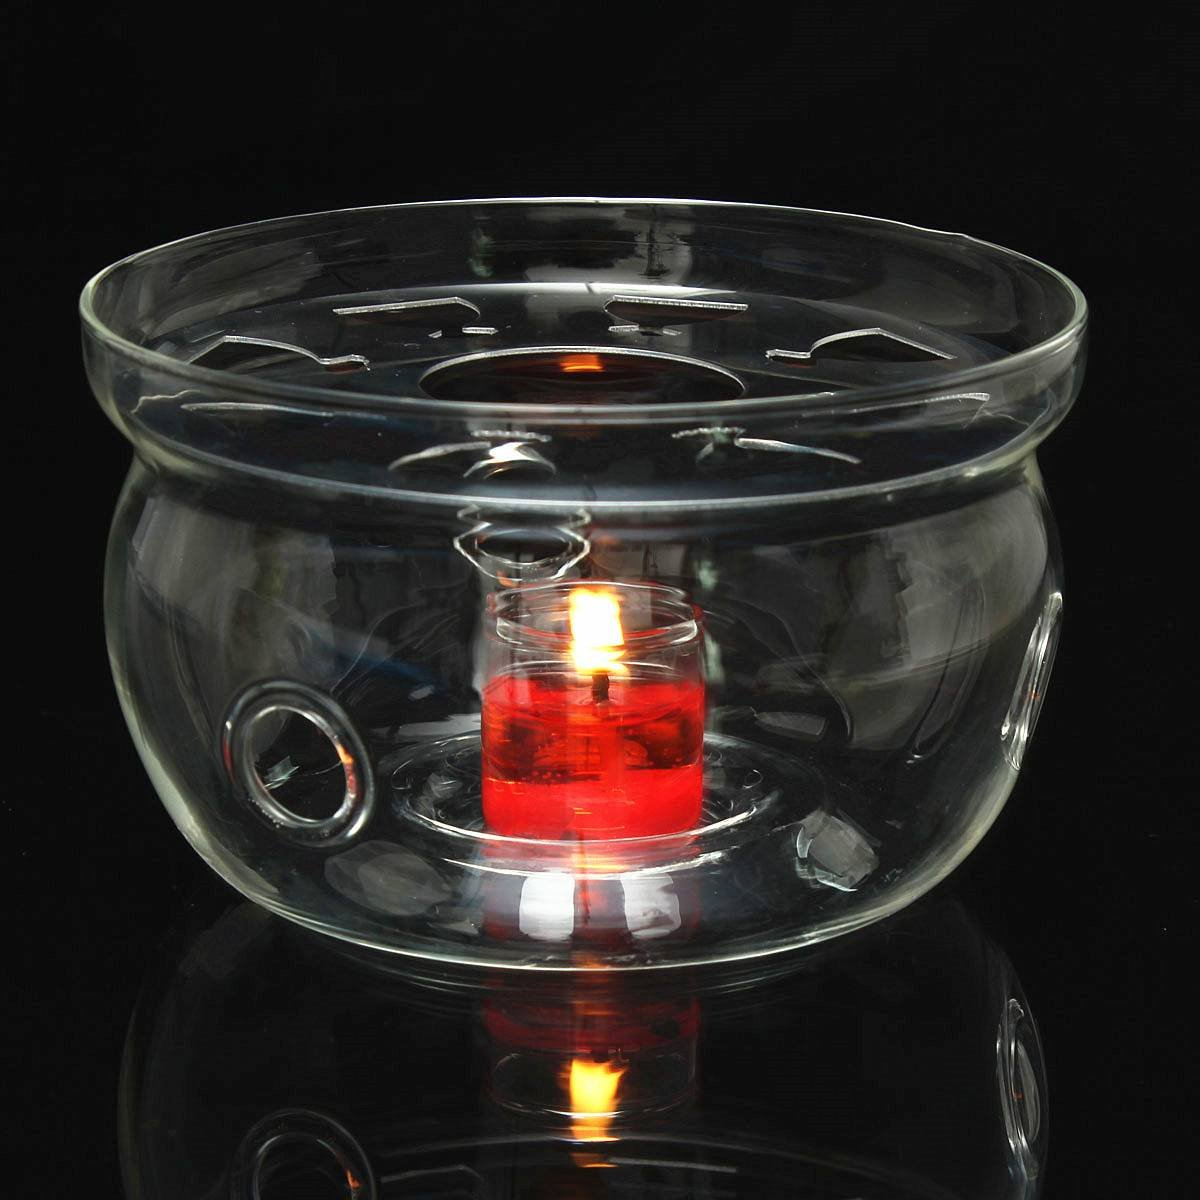 KINGSO Glass Teapot Warmer Heating Base Clear 12676mm by KINGSO (Image #1)